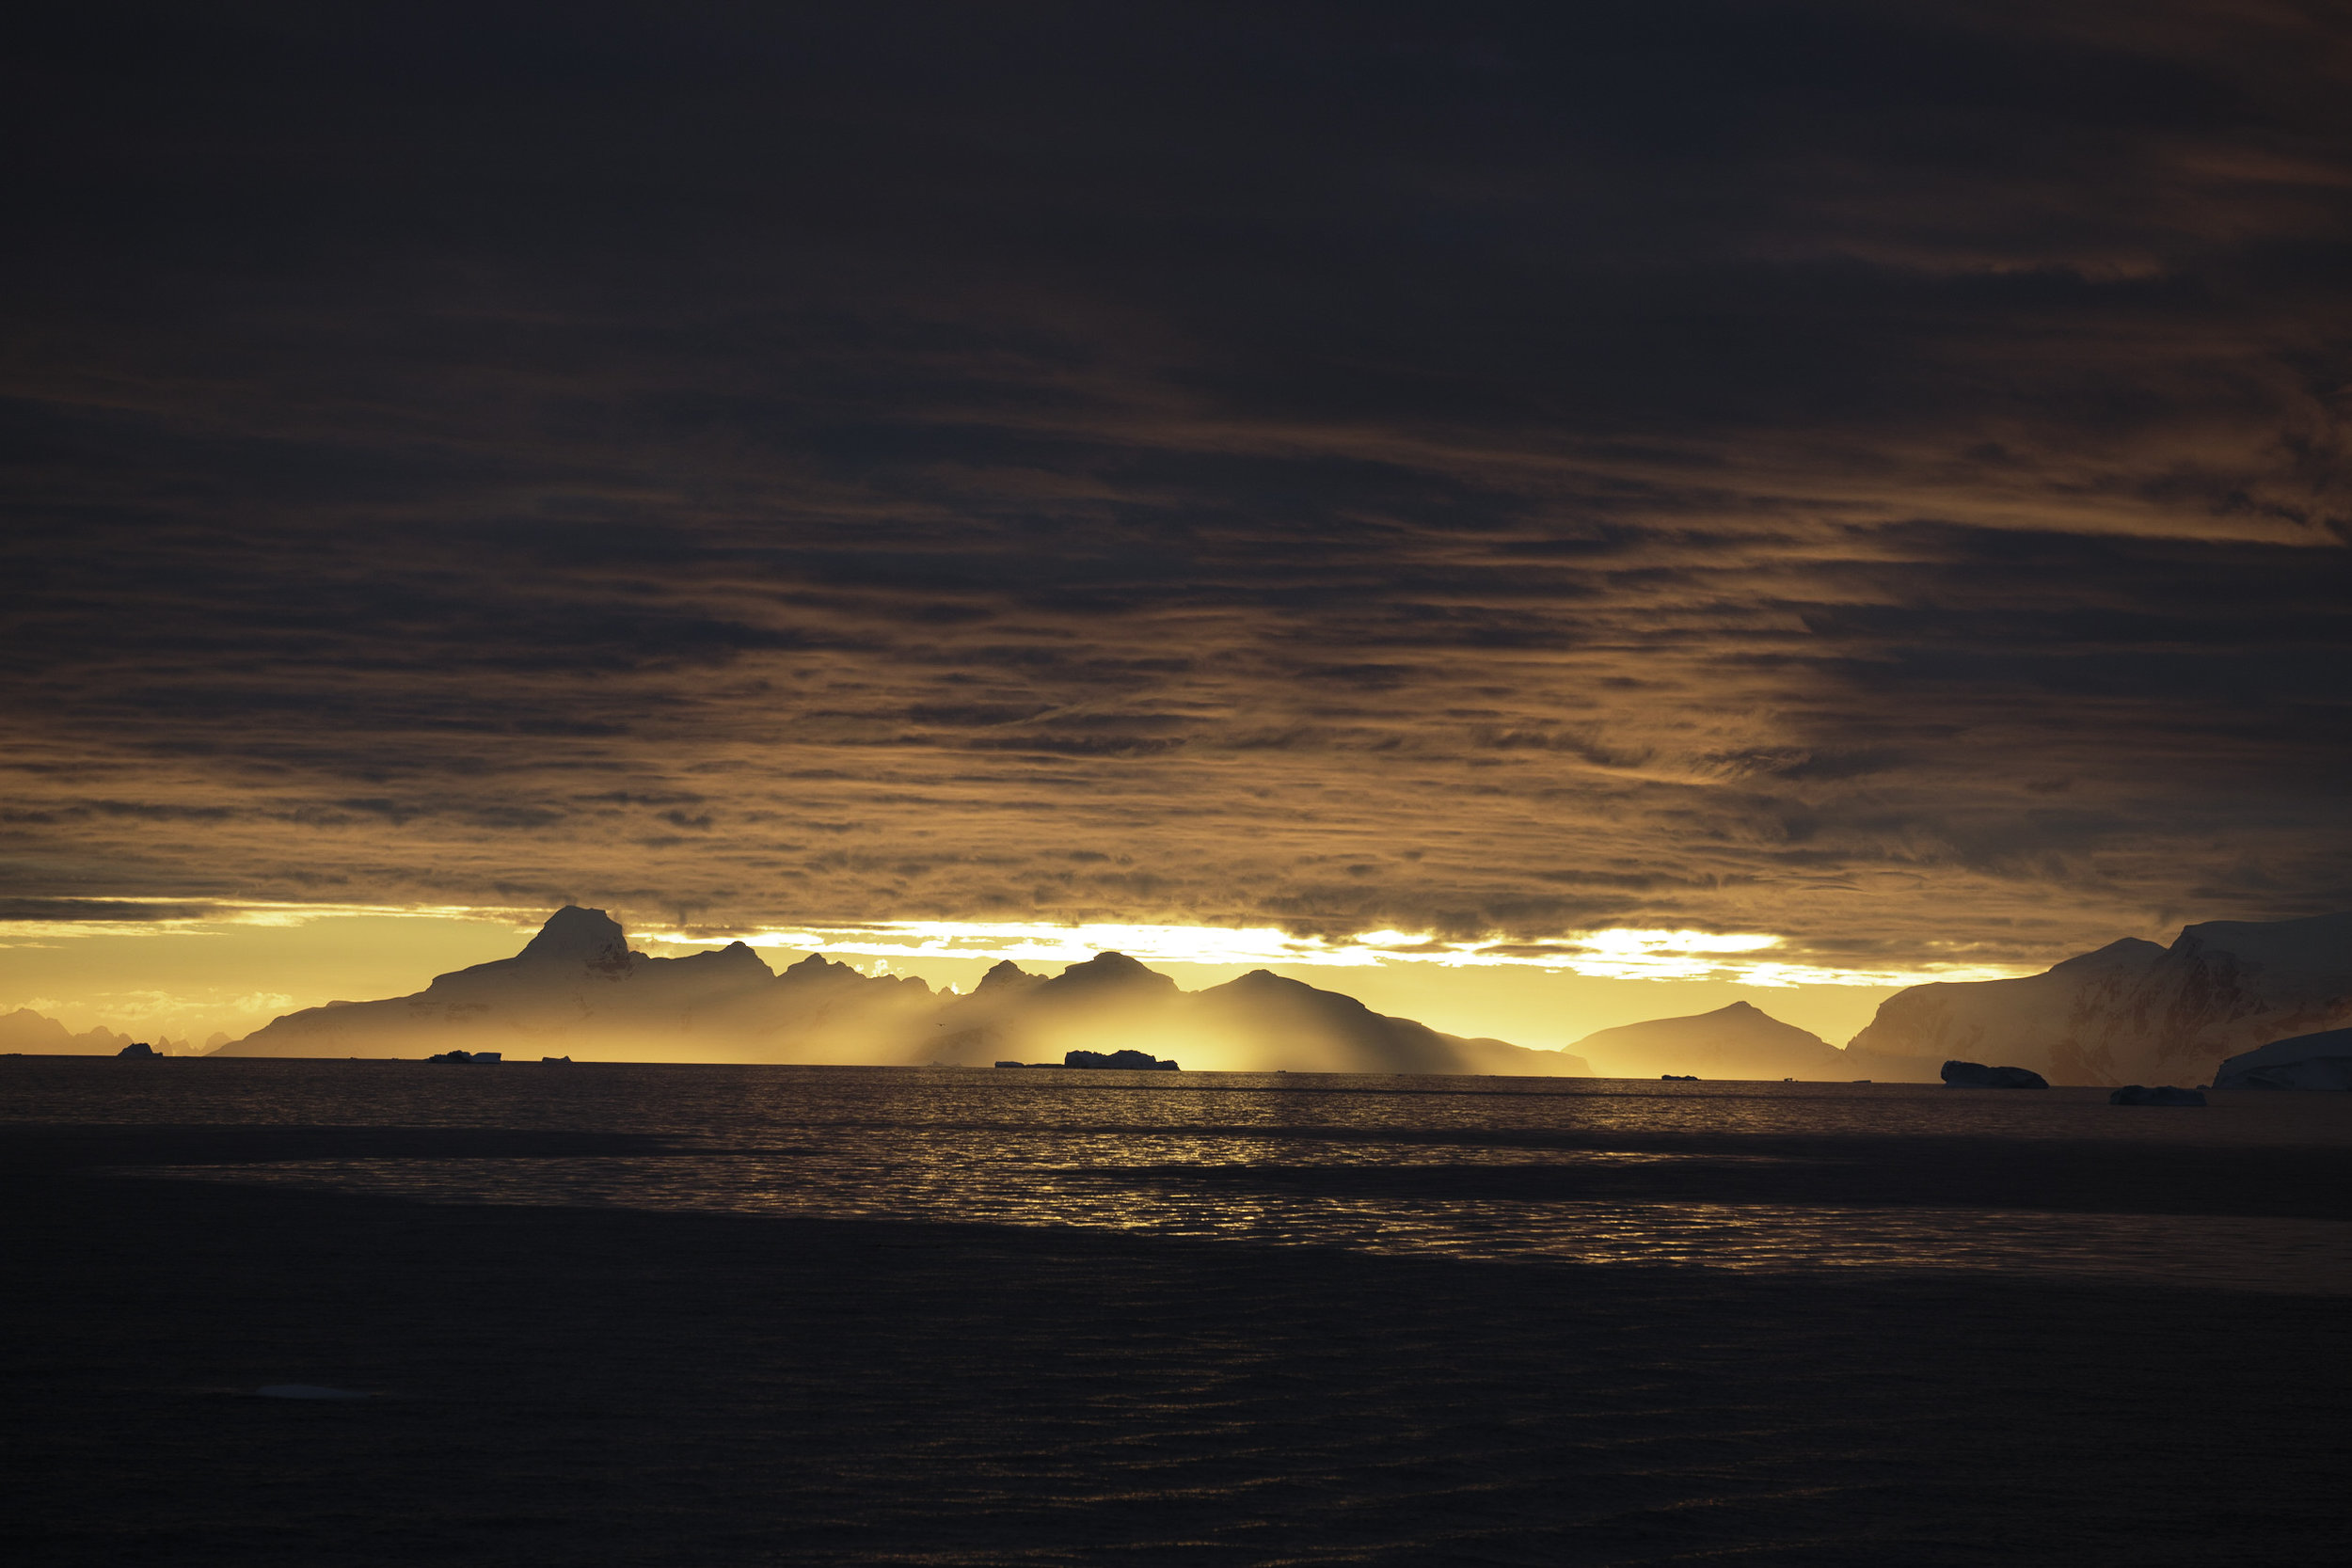 Icebergs, mountains and low cloud cover make for a special sunset.